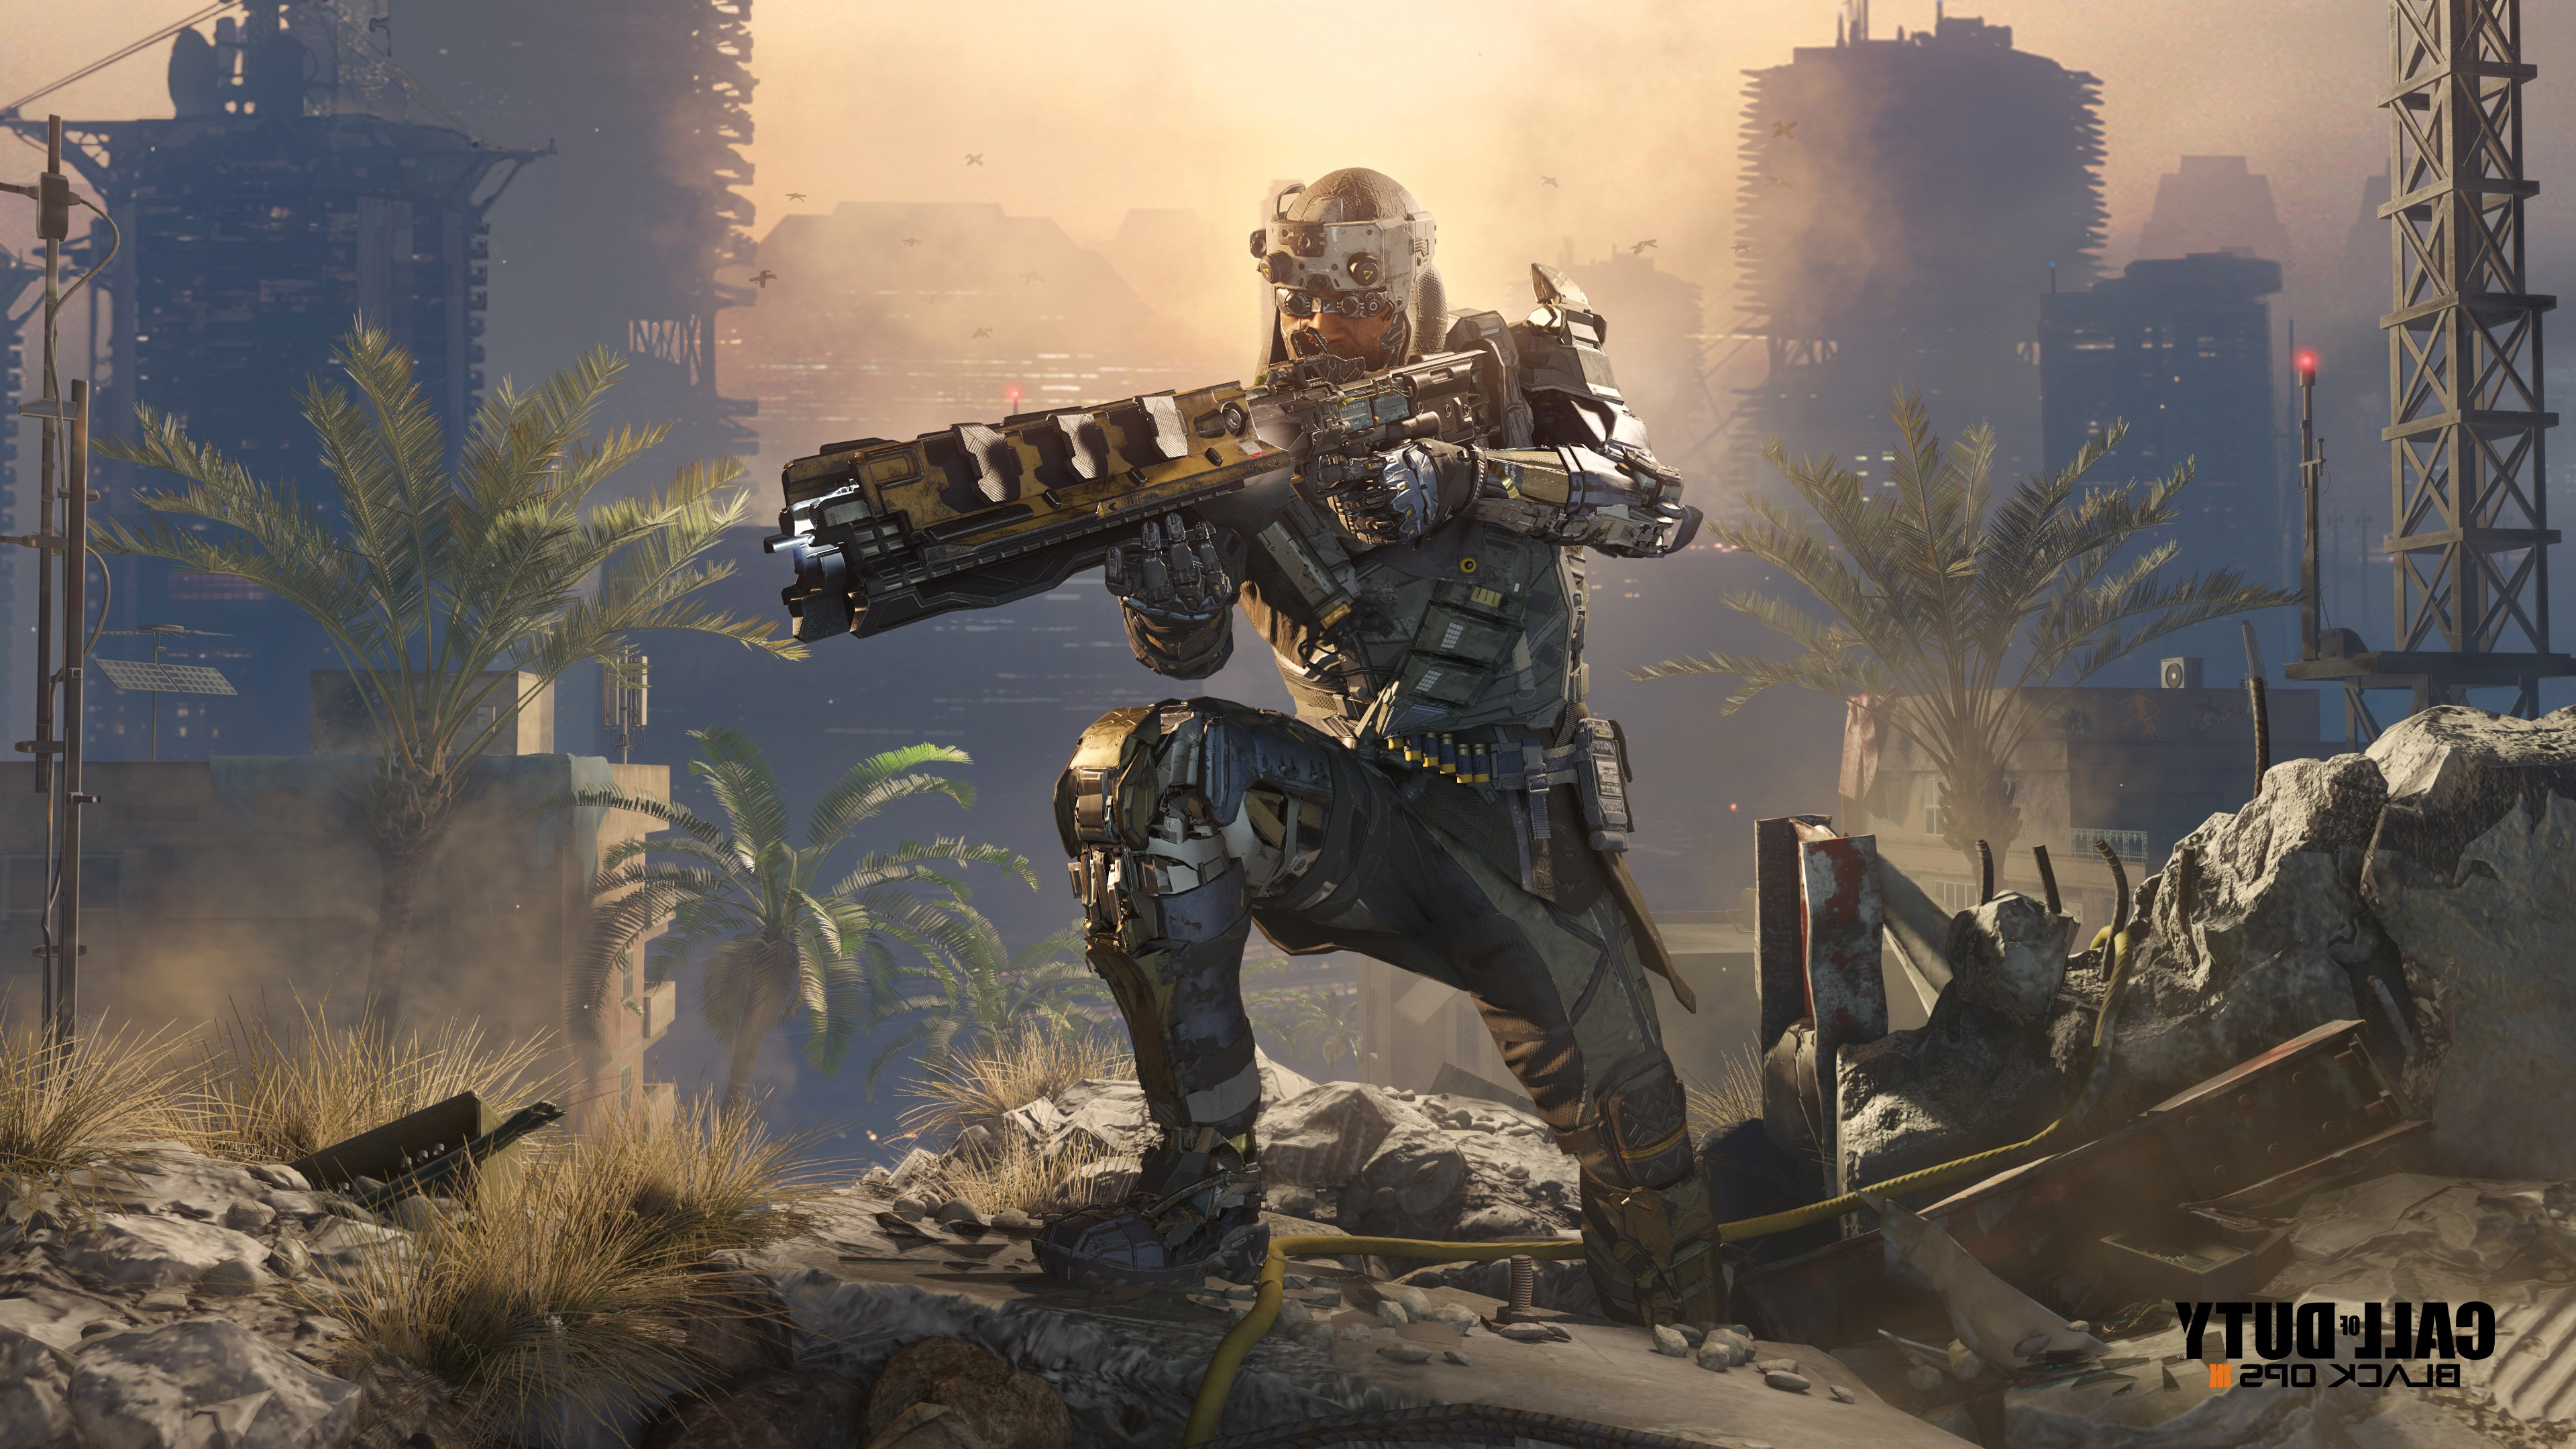 Wallpaper 4k Call Of Duty Black Ops Call Of Duty Black Ops